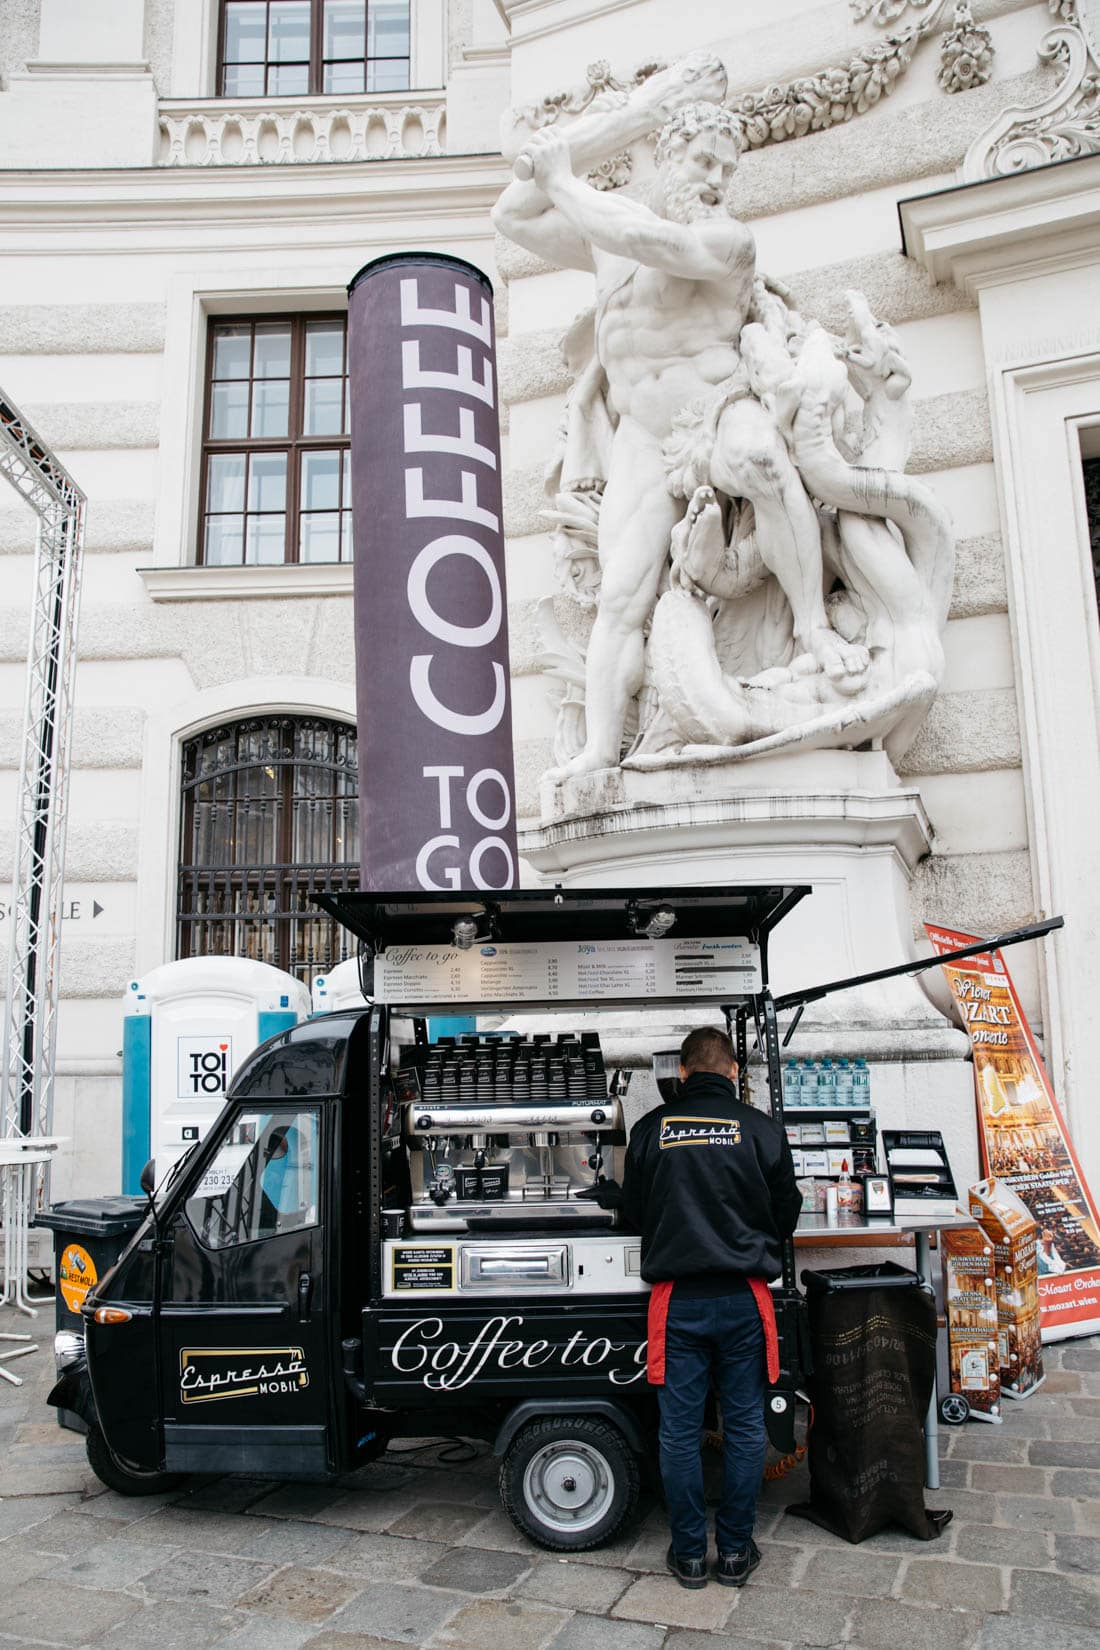 Coffee to go Vienna